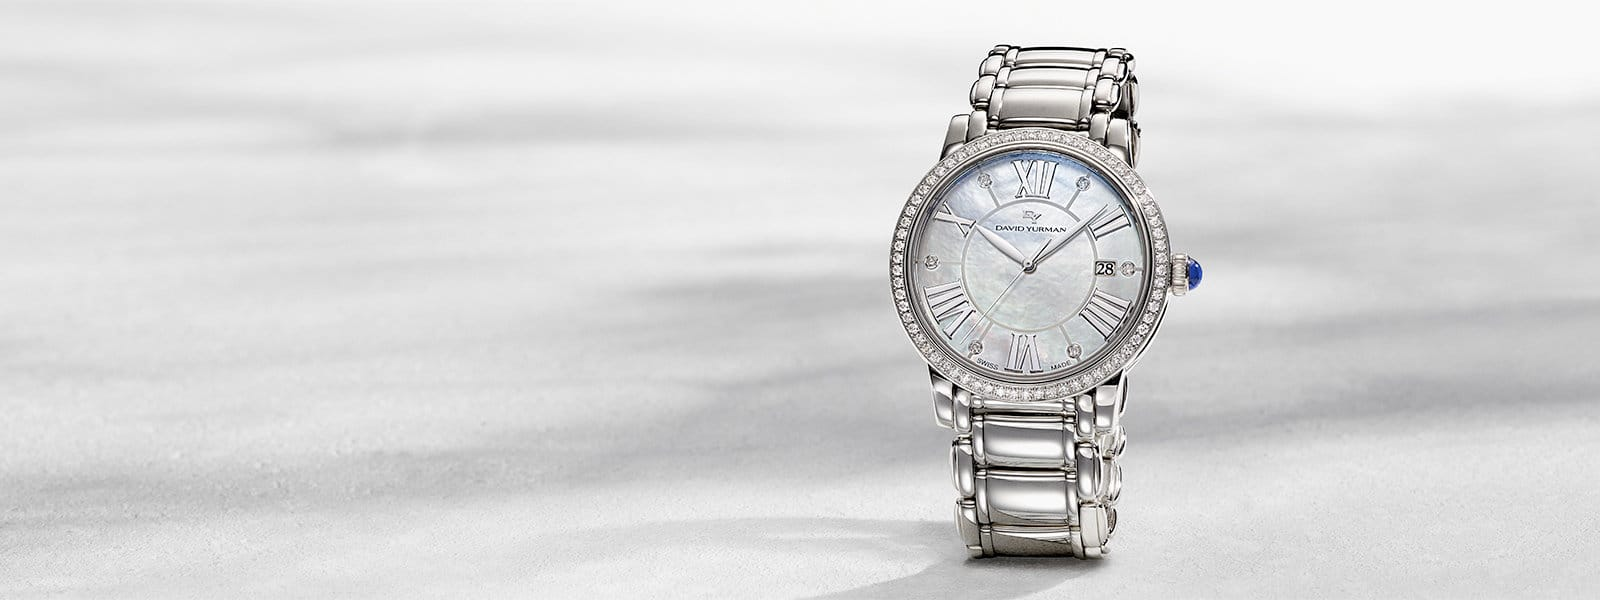 A David Yurman Classic quartz watch in stainless steel with a mother-of-pearl dial and diamonds standing upright on a white textured stone with long shadows.